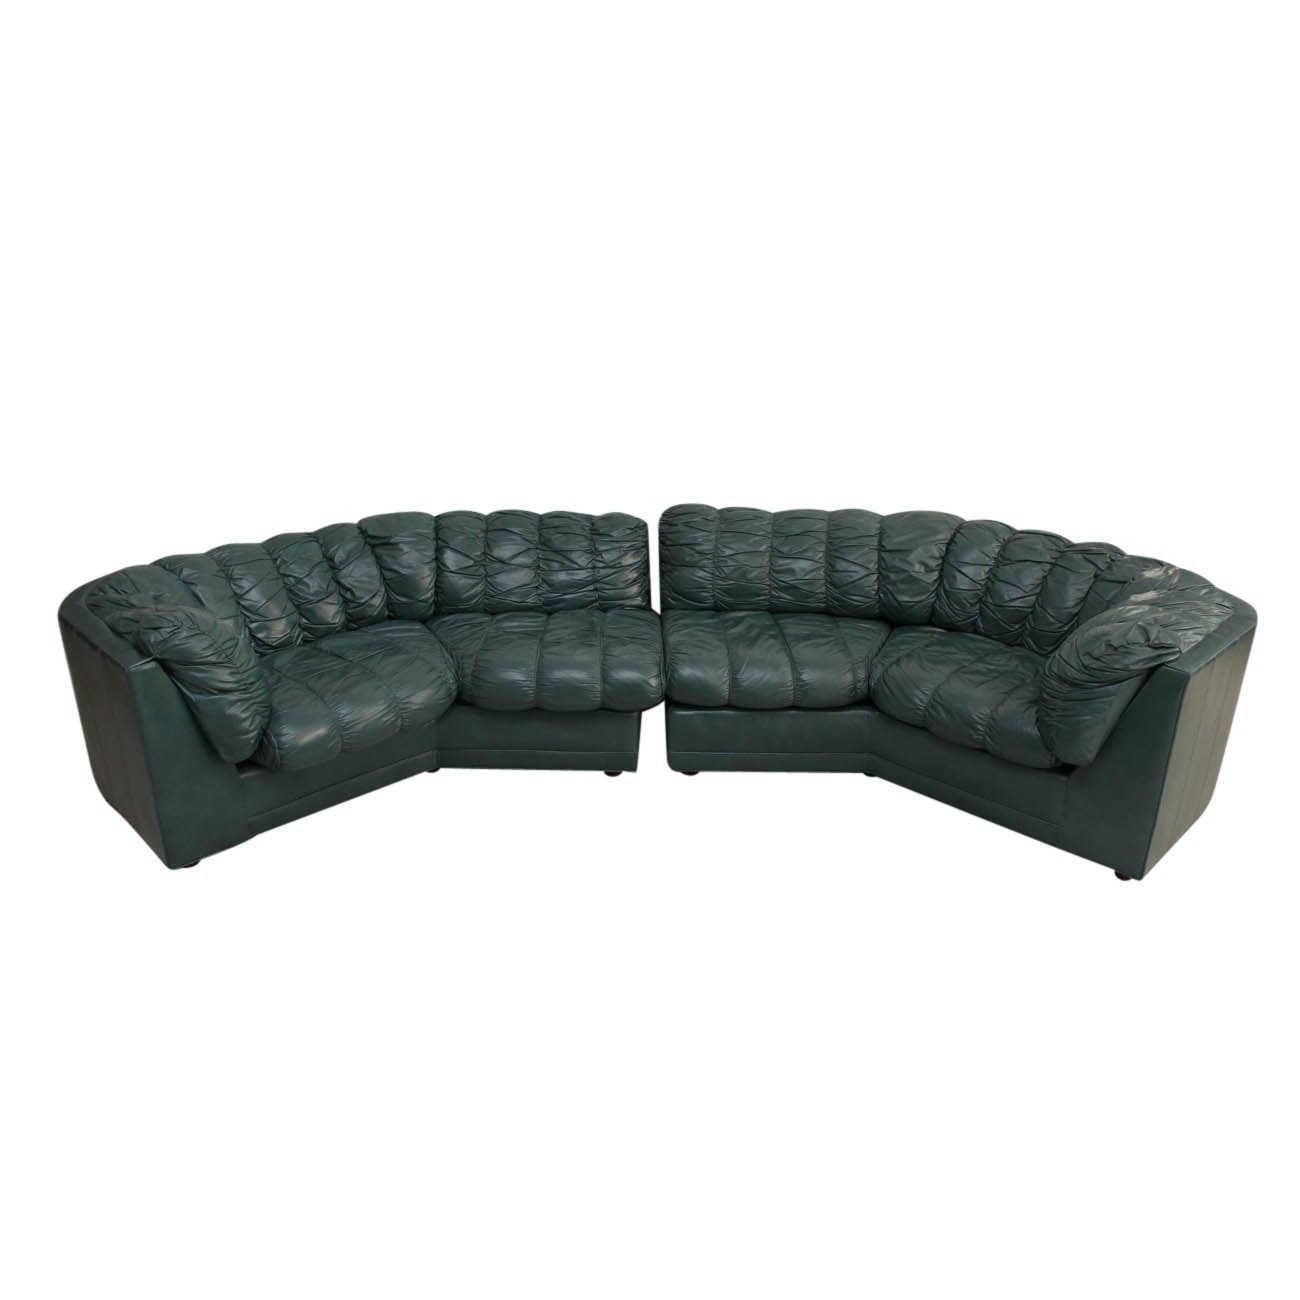 Thomasville Green Leather Two Piece Sectional Sofa ...